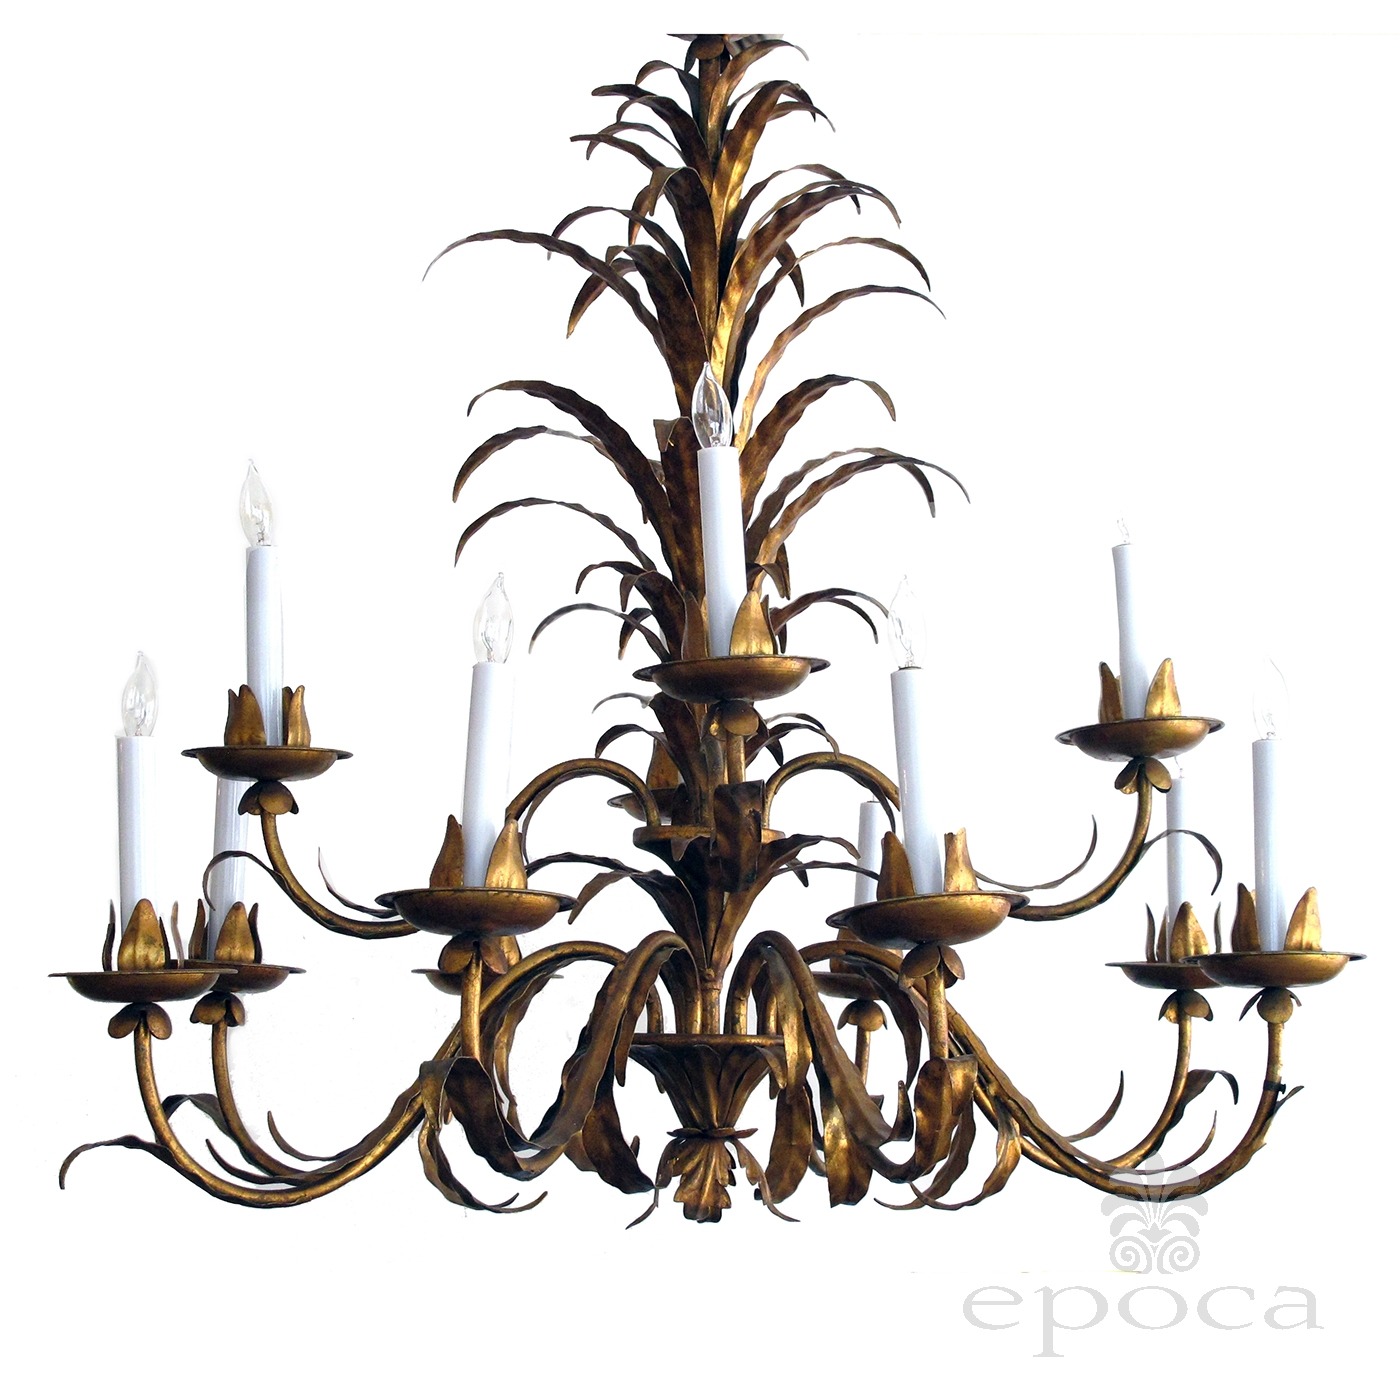 f french id amp x lights pendant lighting at chandelier furniture chandeliers grapevine vine